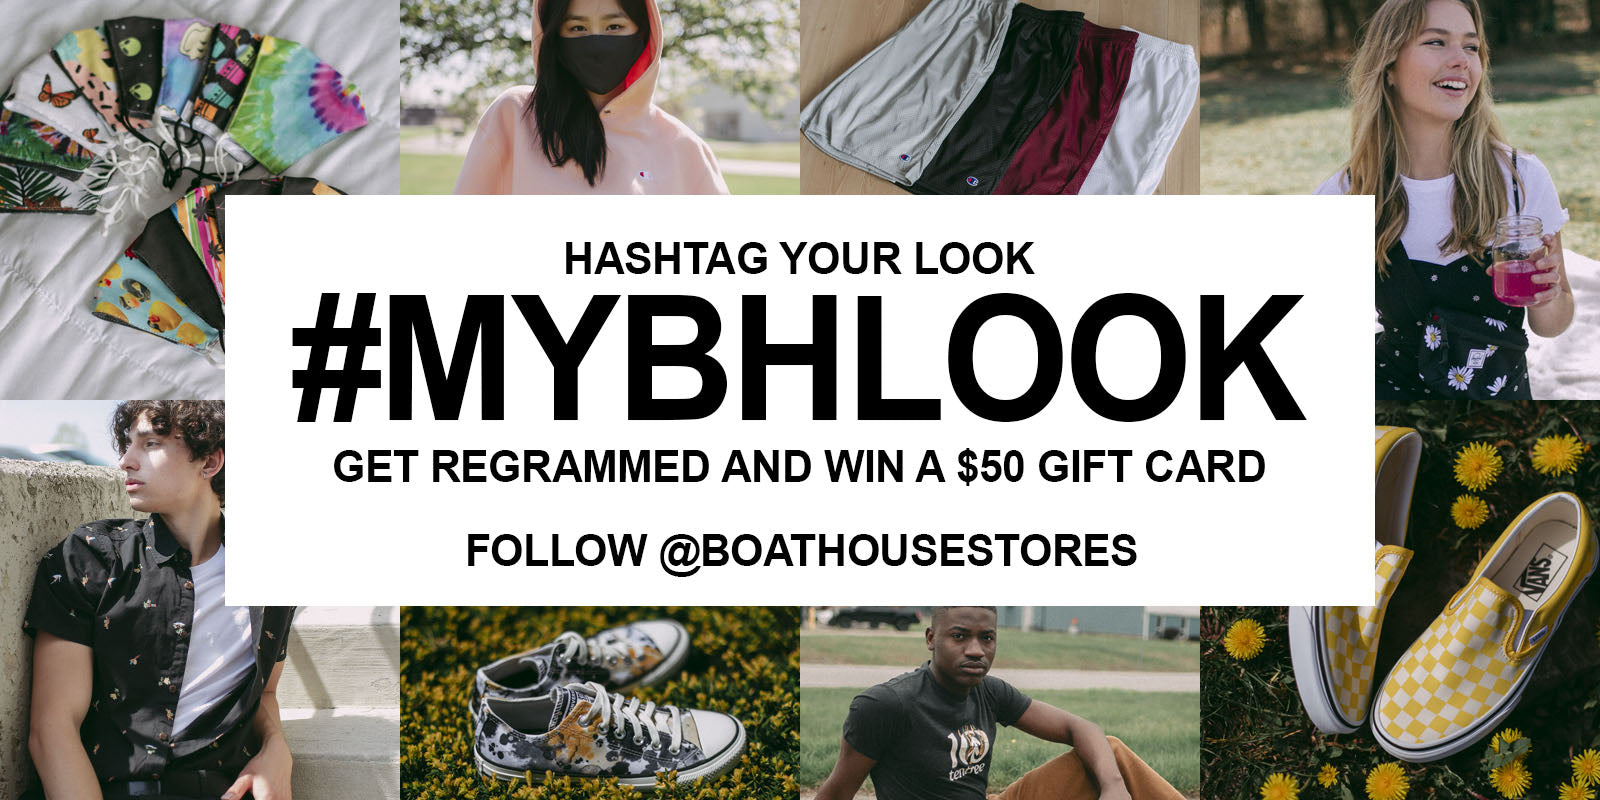 Hashtag your look #MYBHLOOK get regrammed and win a $50 Gift Card